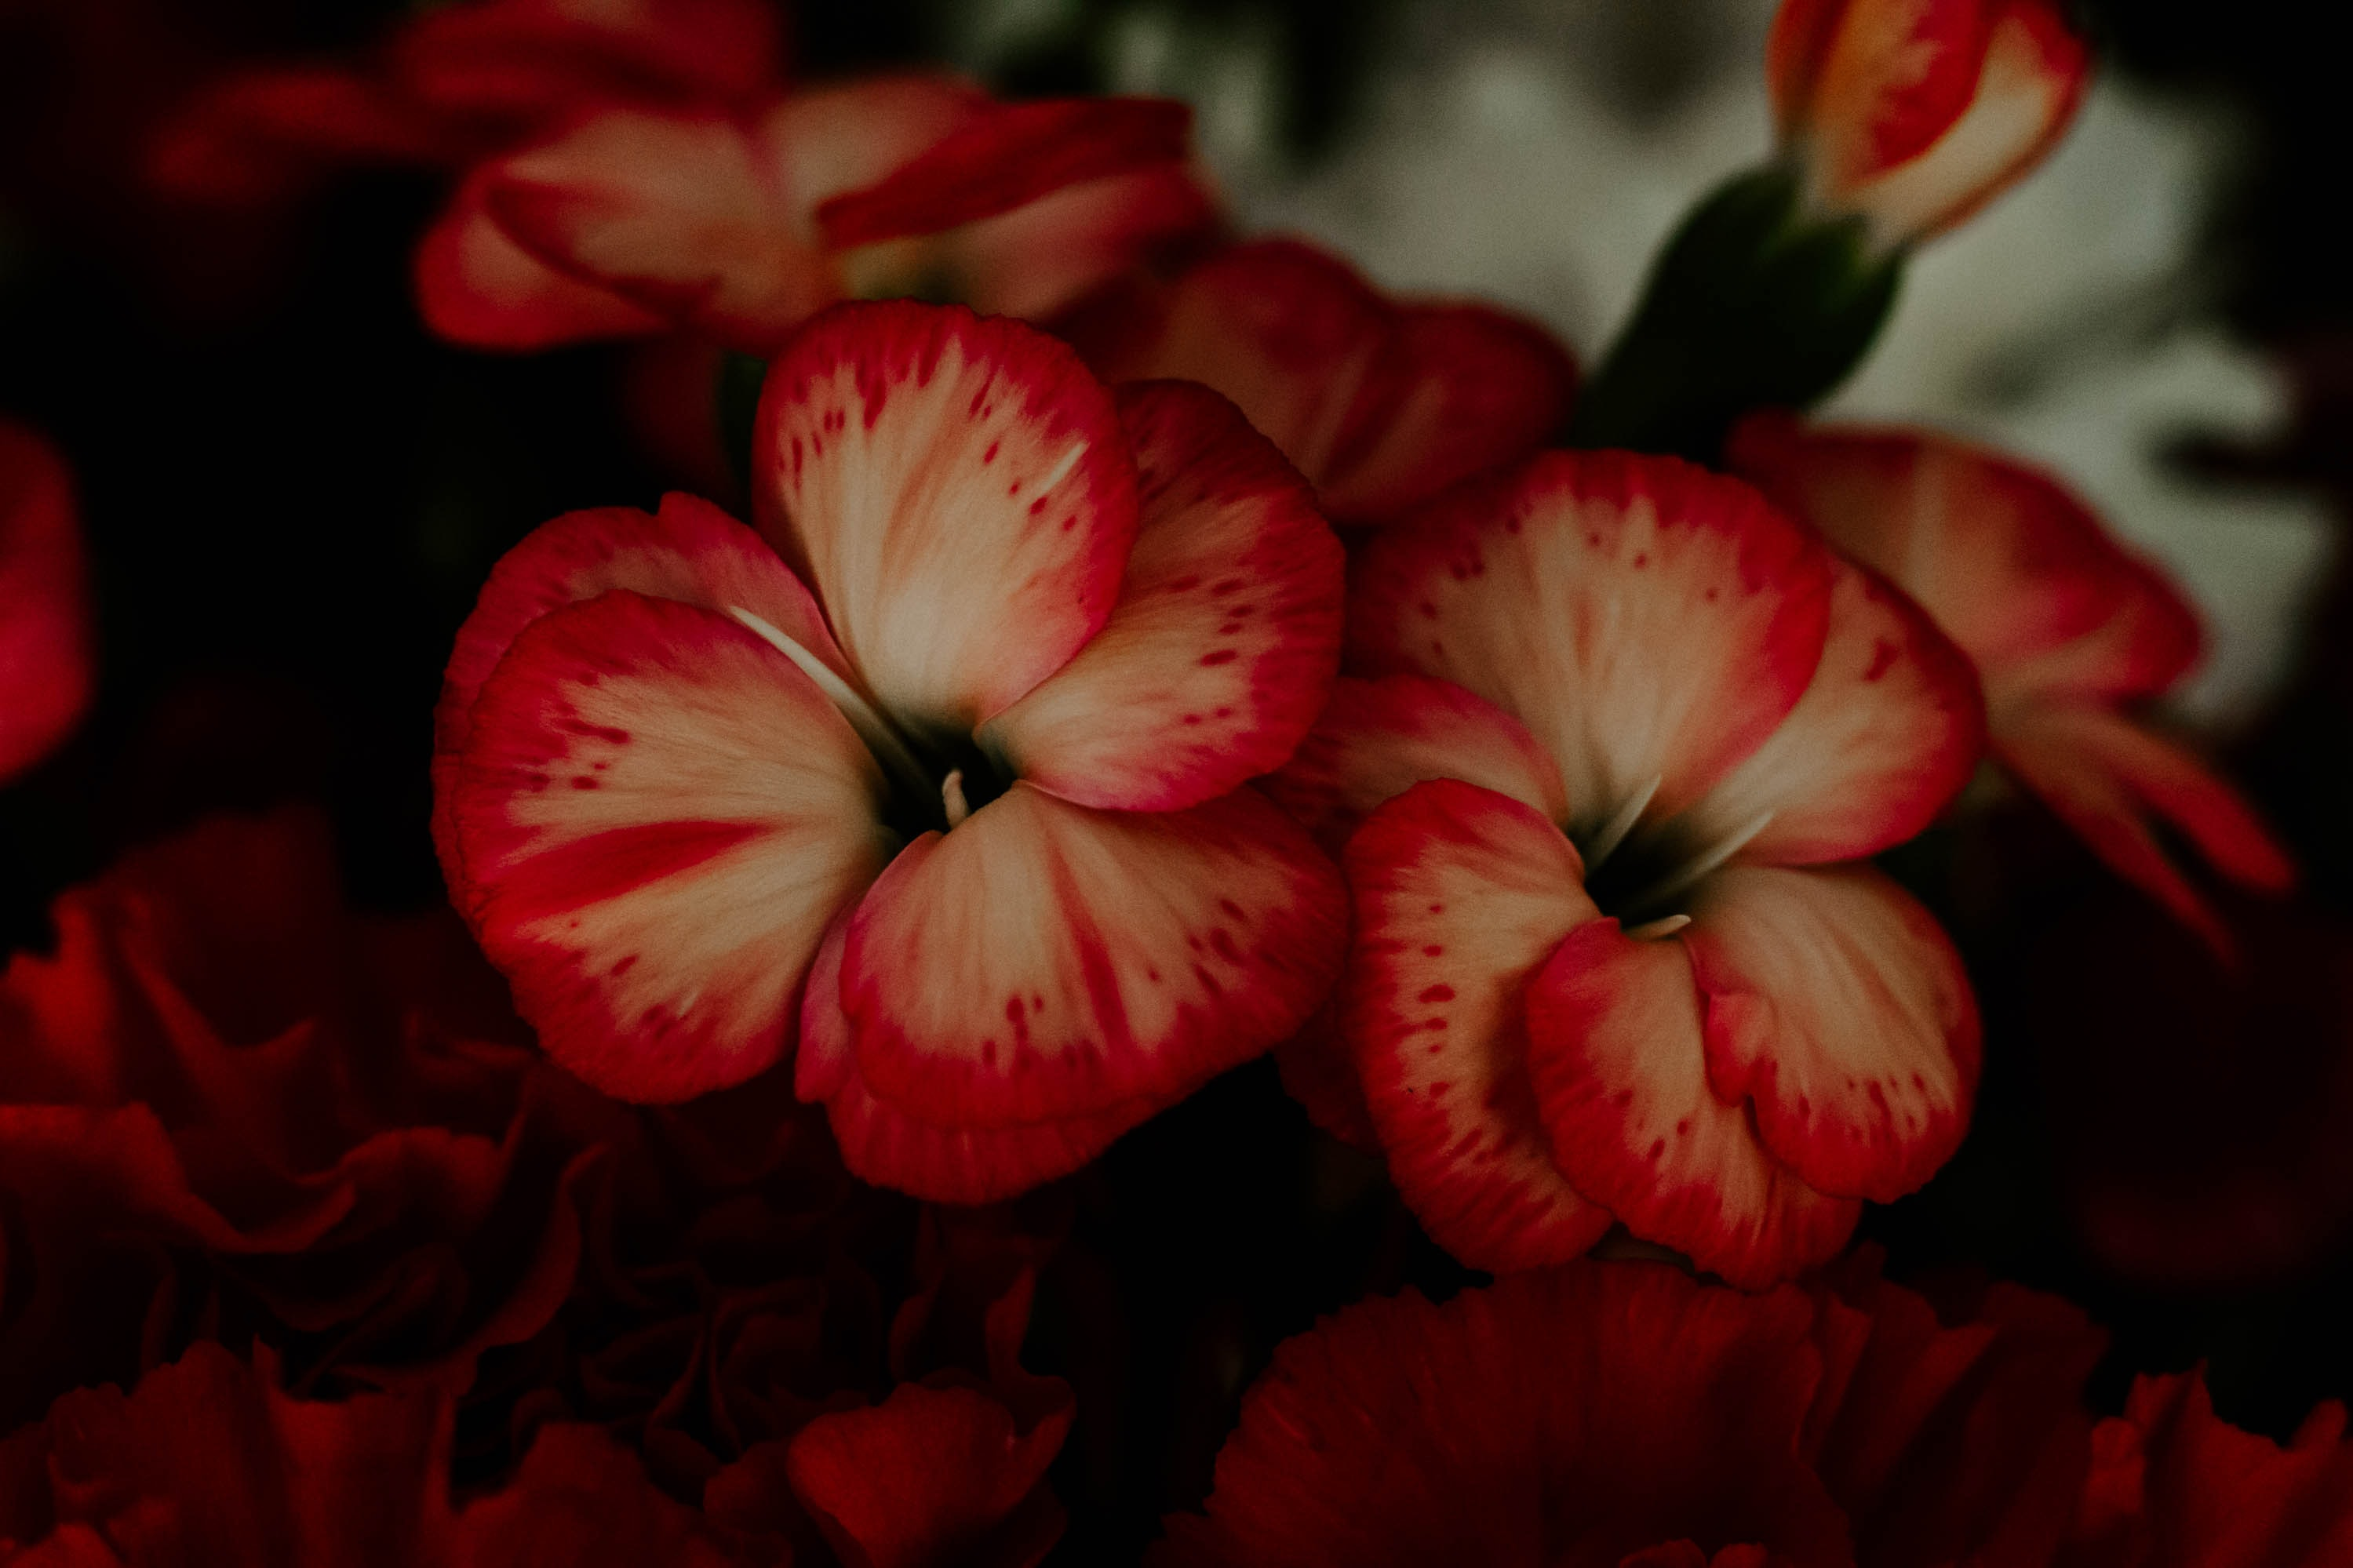 closeup photography of beige and red petaled flowers